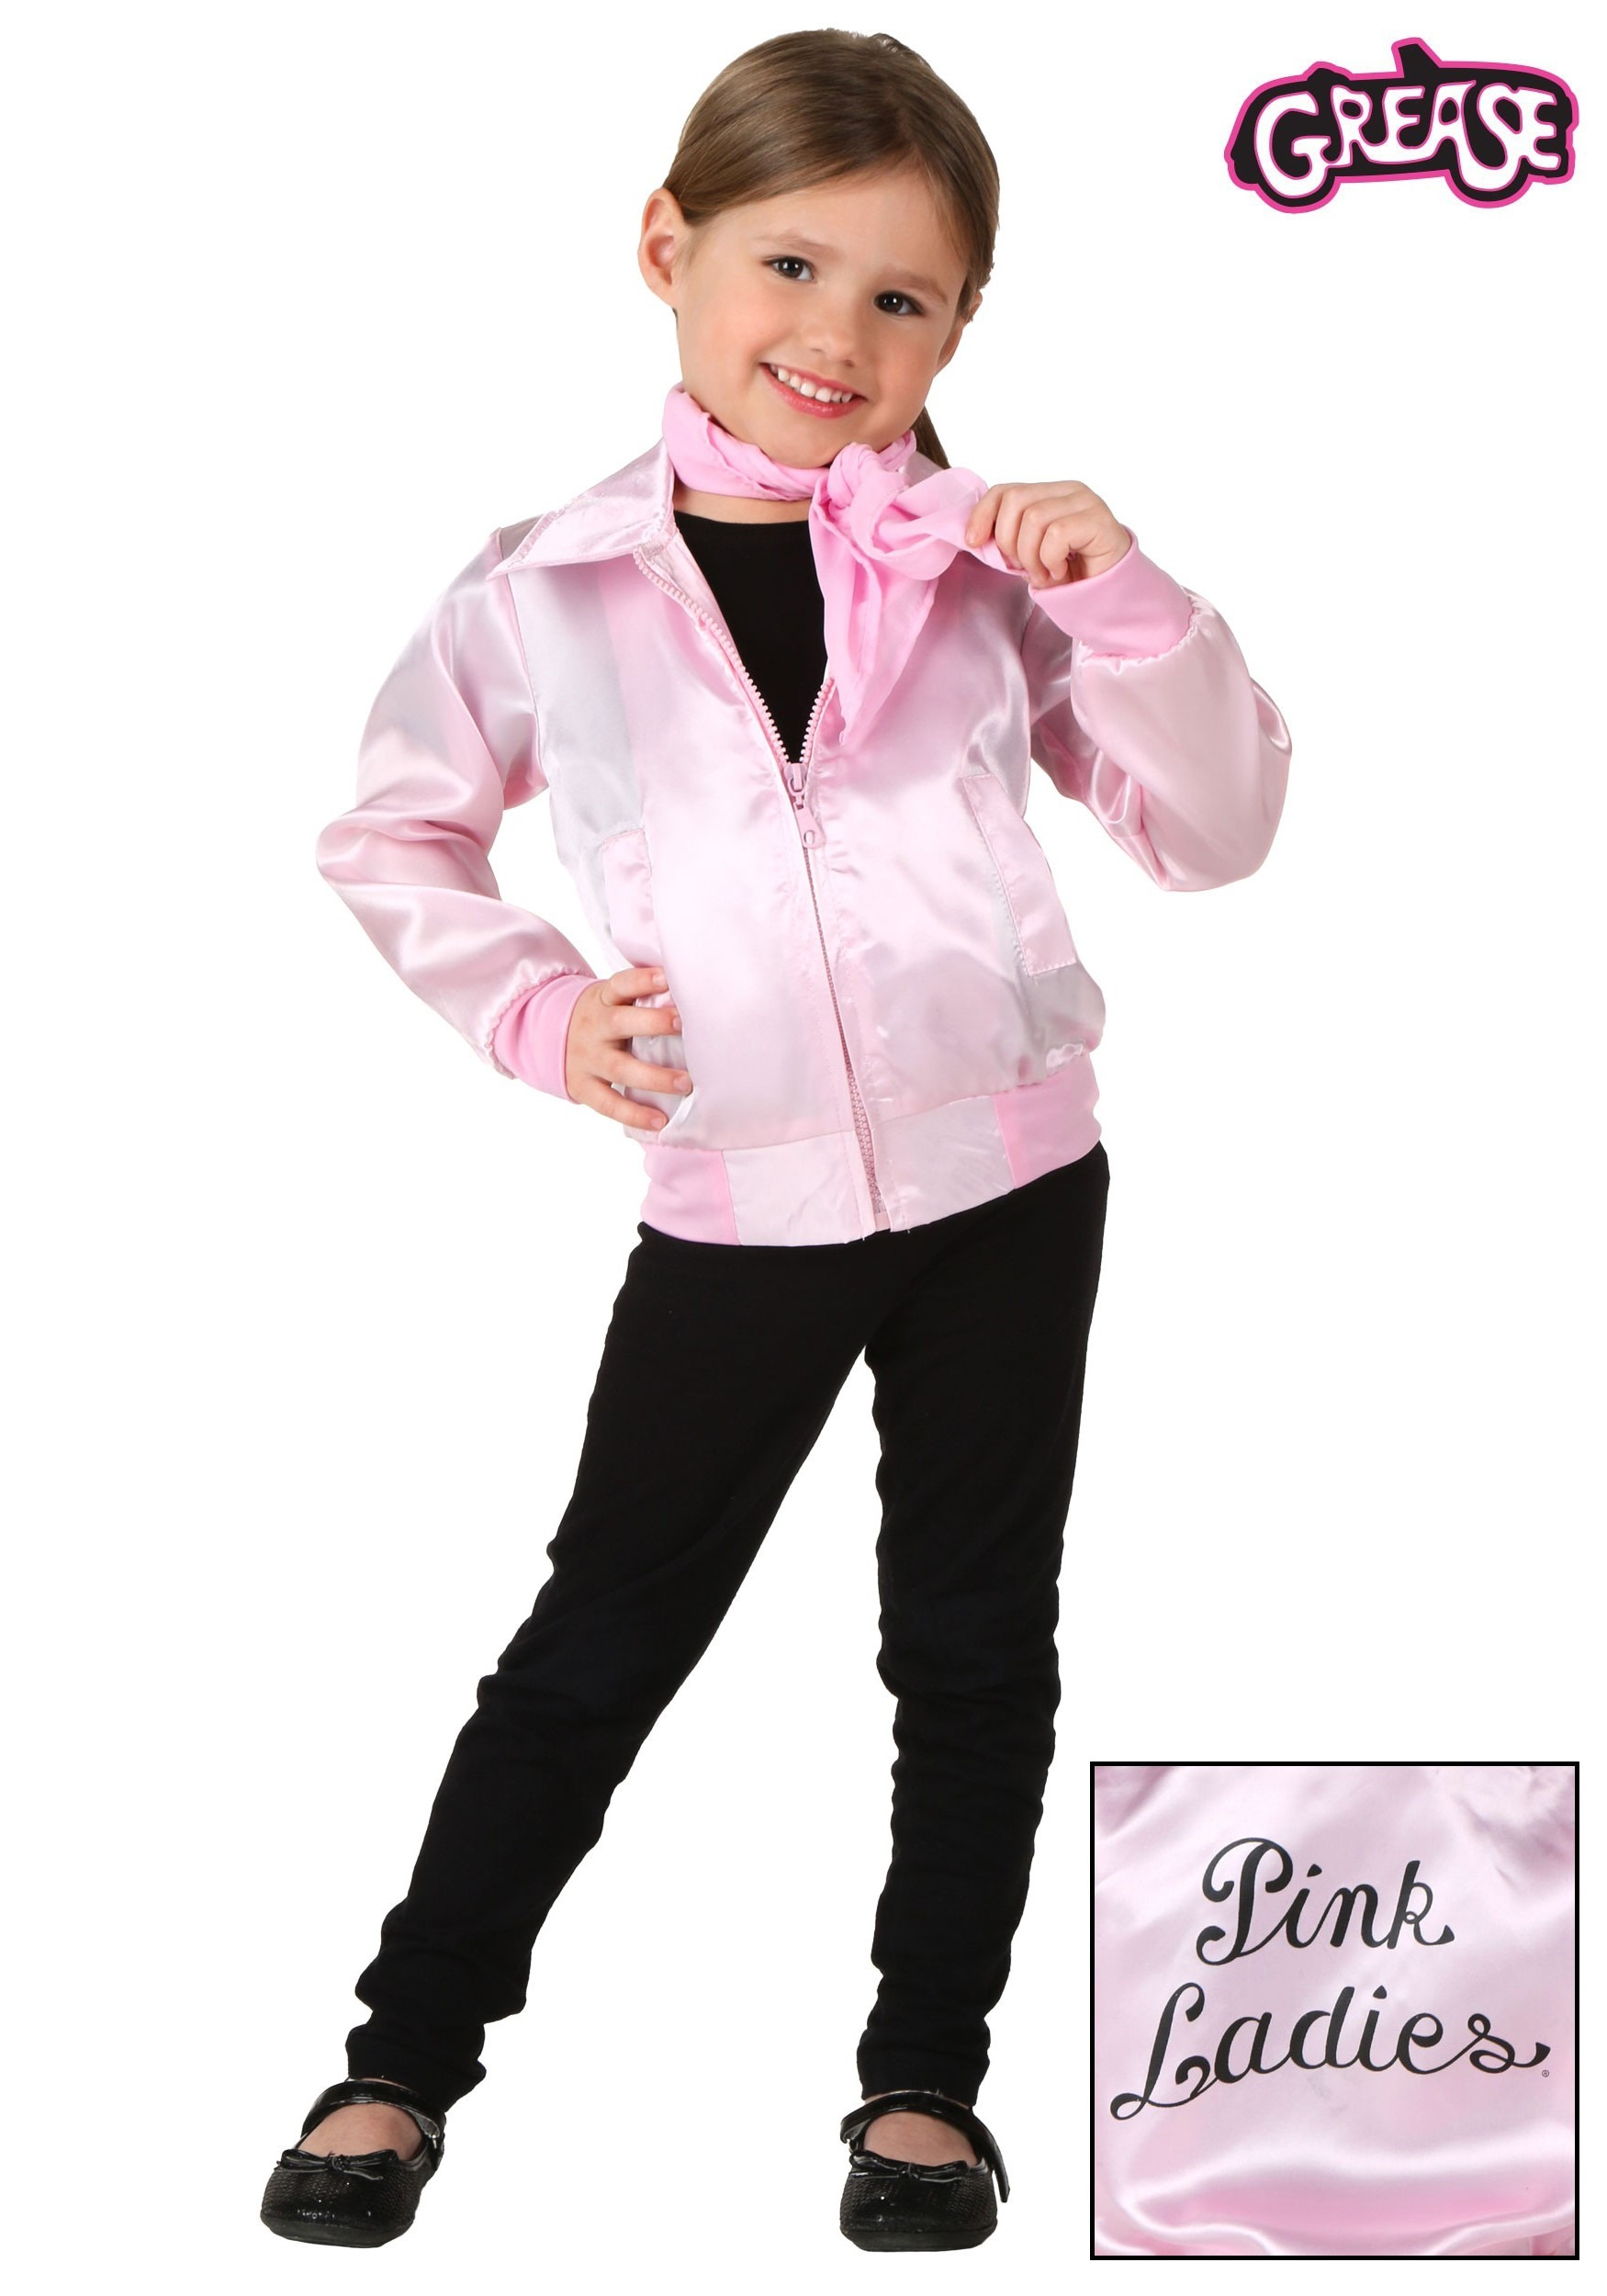 Toddler Grease Pink Ladies Jacket  sc 1 st  Halloween Costumes & Toddler Halloween Costumes - HalloweenCostumes.com